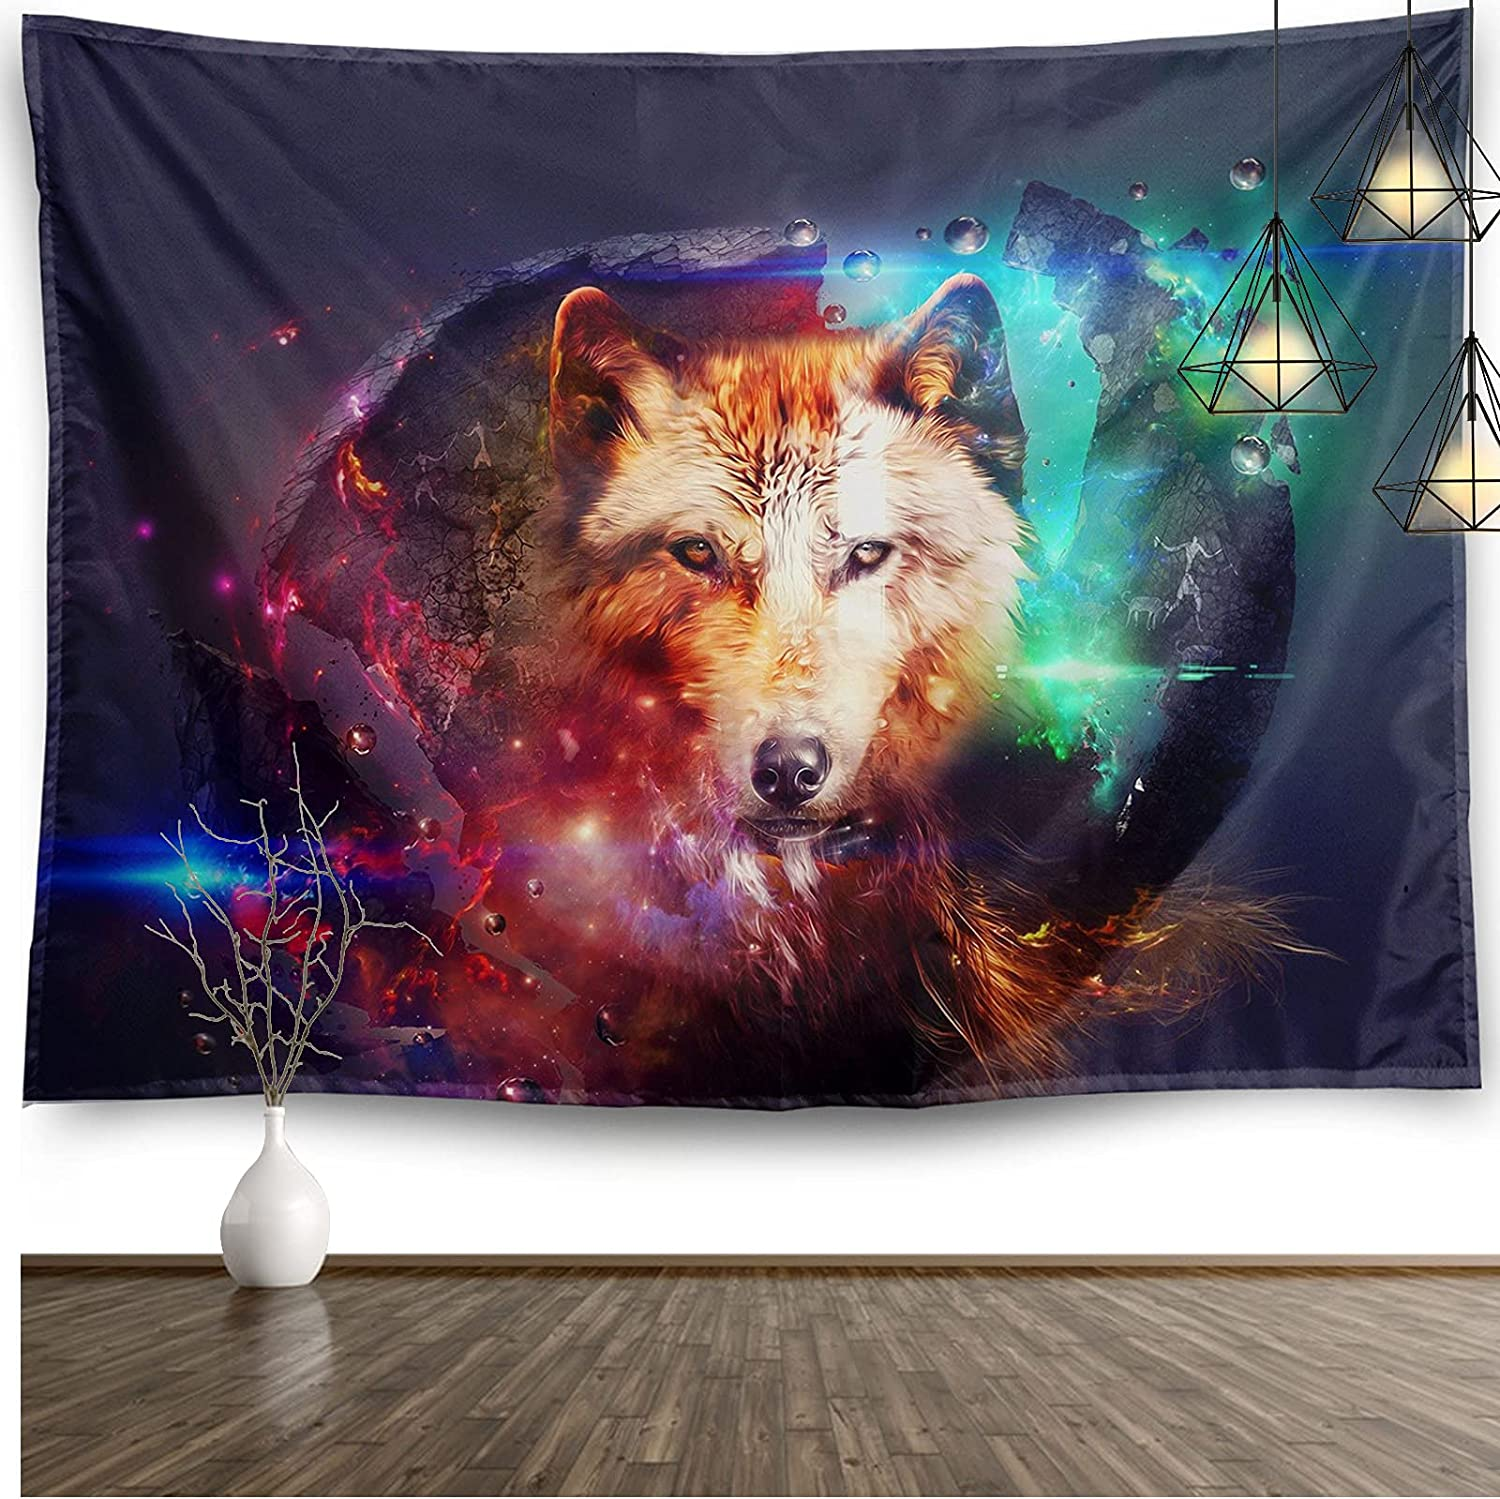 Wolf Animal Tapestry Home Decor Galaxy Blue Purple Small Wall Hanging Art Blanket for Teen Living Room Bedroom College Dorm Office Aesthetic Decor(60